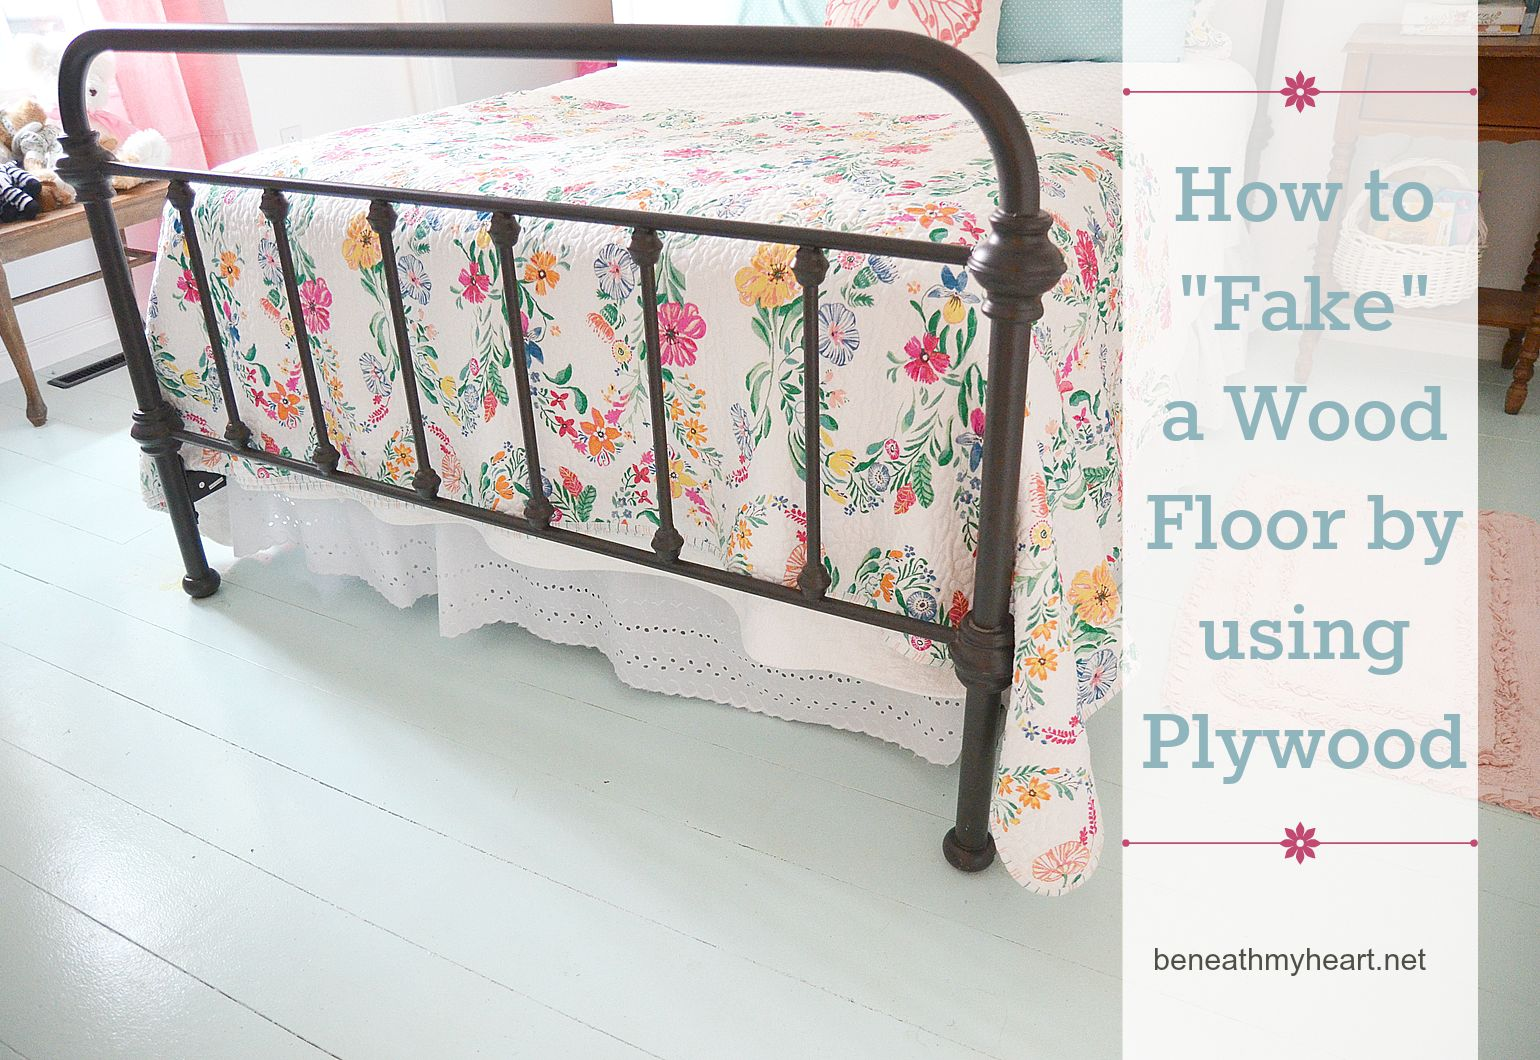 how to fake a wood floor by using ply